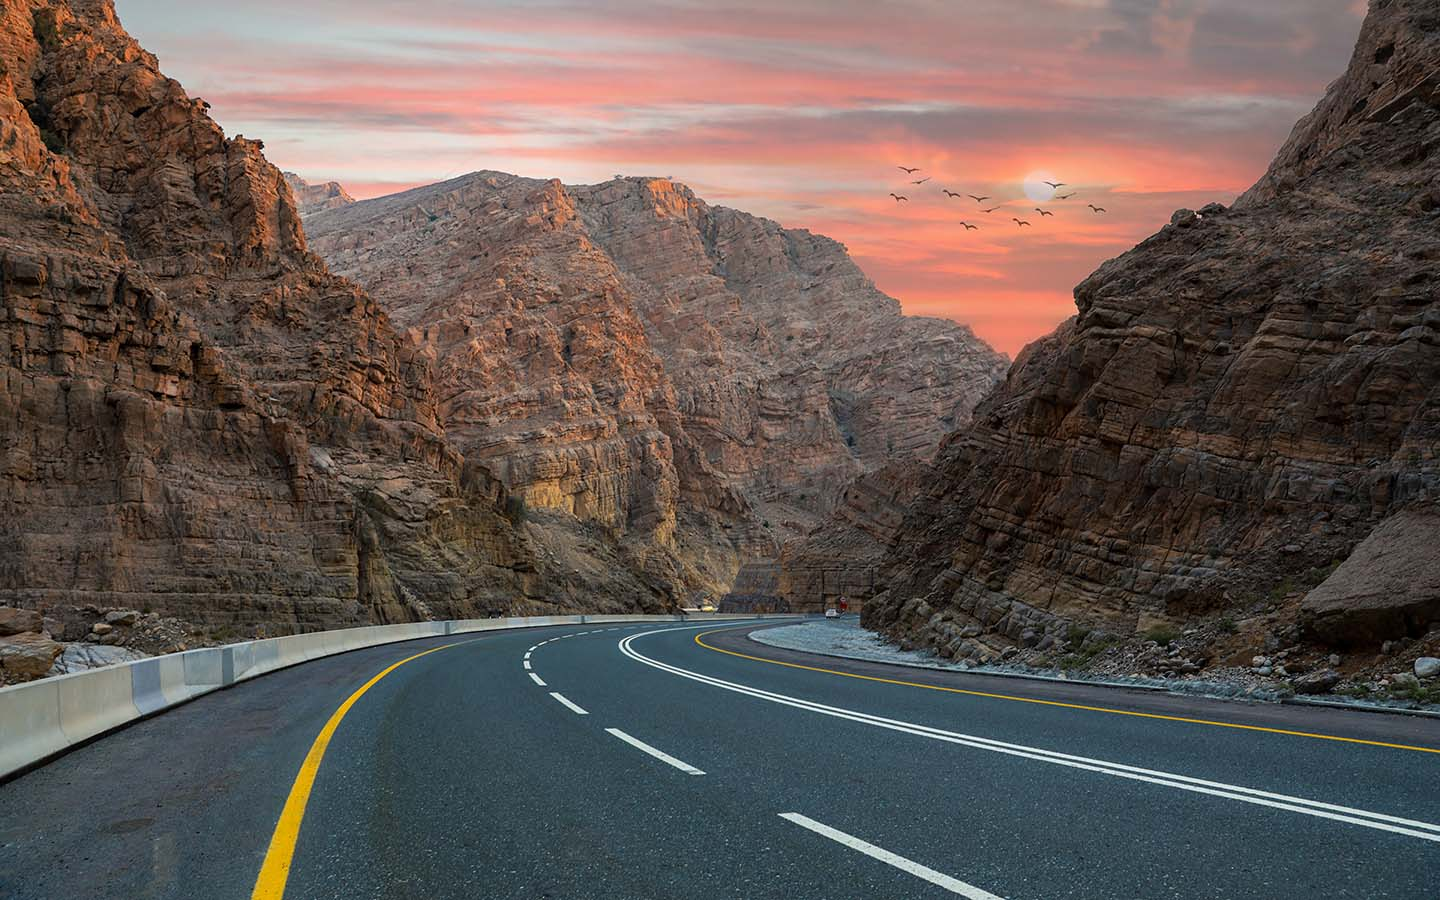 Roads in RAK